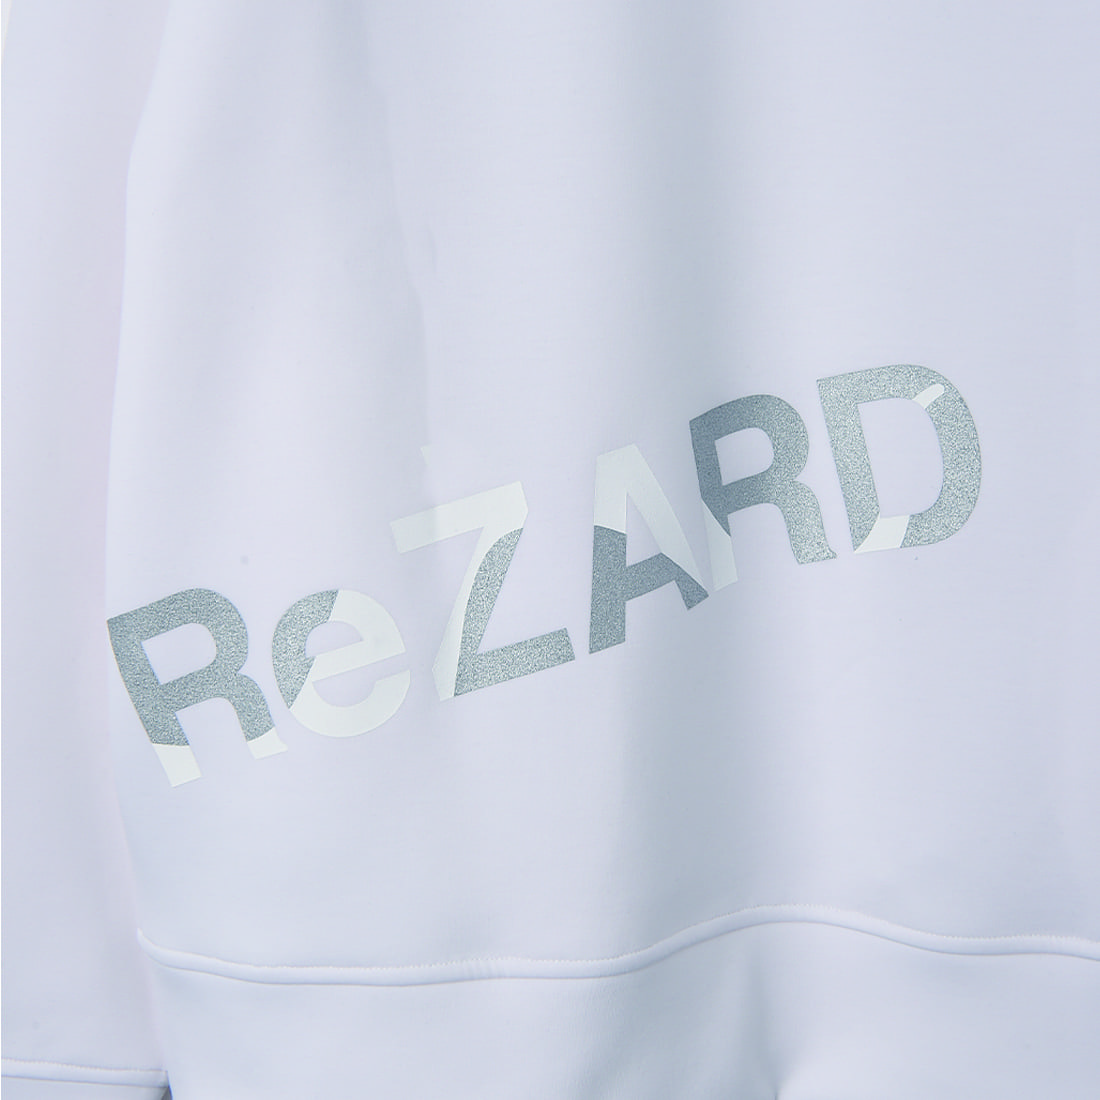 【ReZARD】Tail shadow Logo Sweat